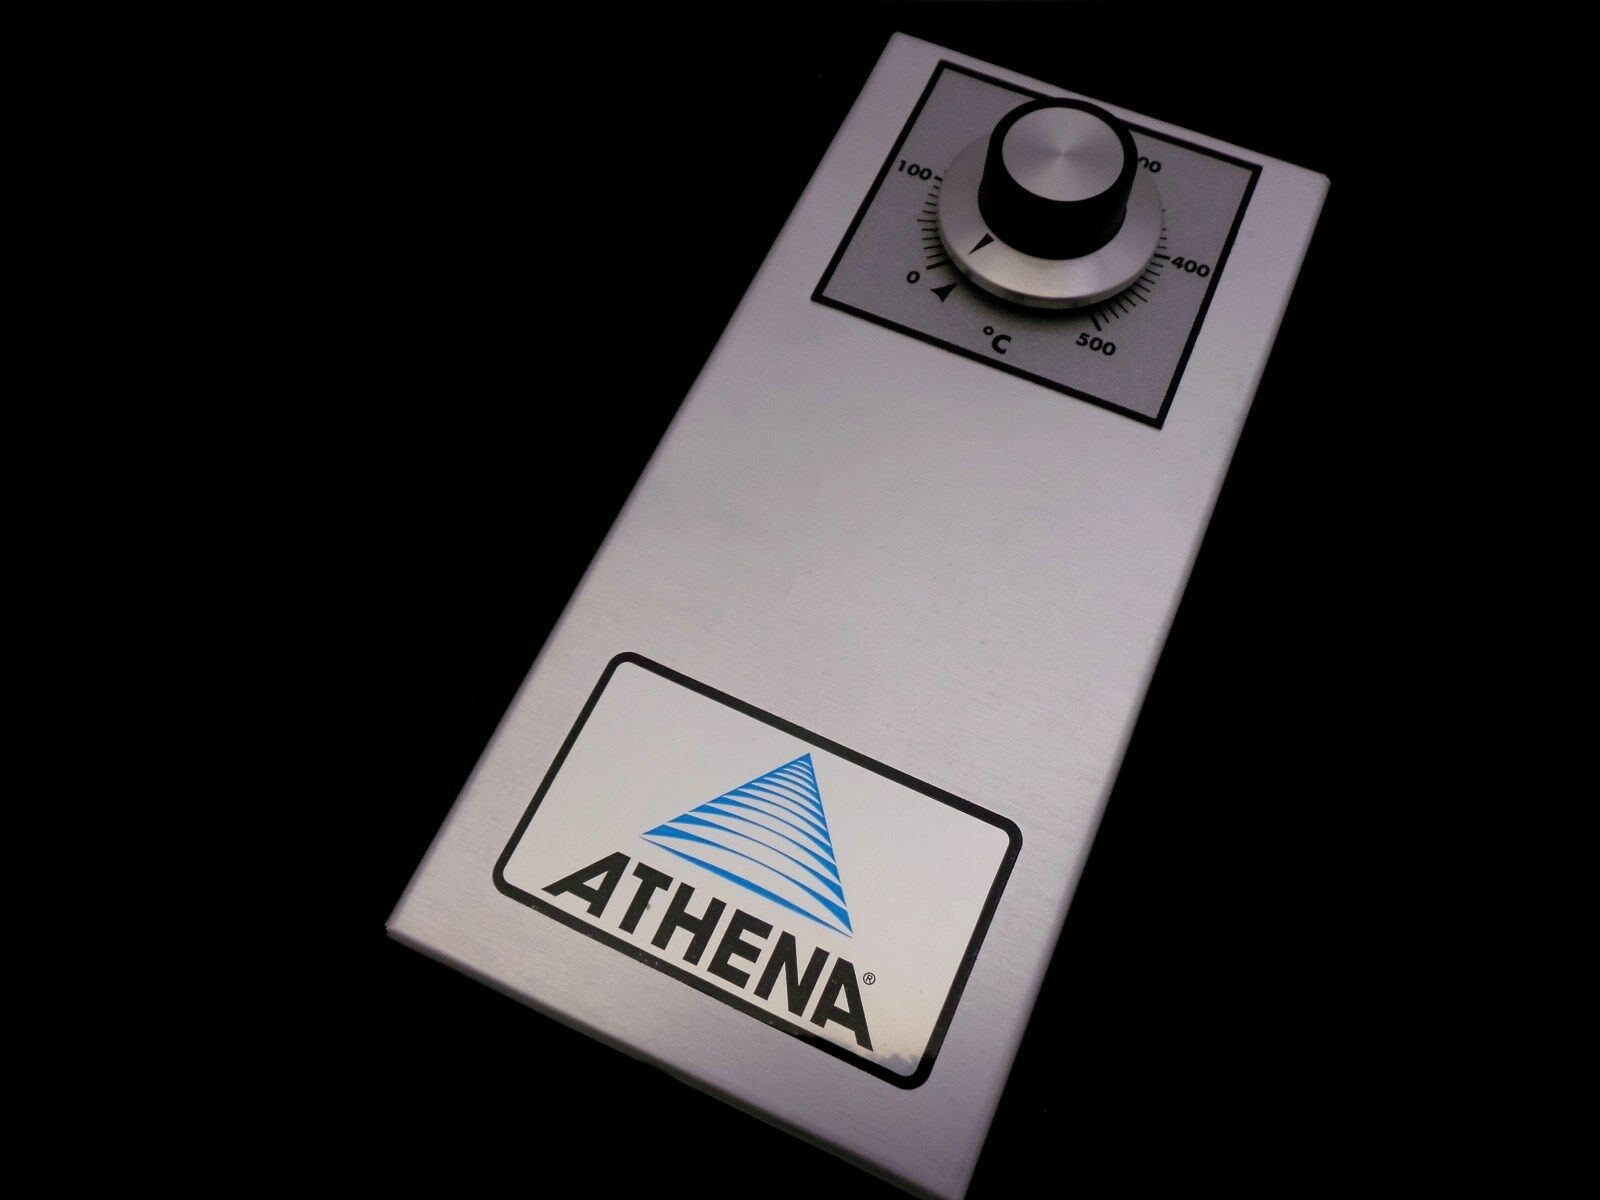 ATHENA 86-D-B-05C-000 SERIES 80 TEMPERATURE CONTROLLER 0-500 DEGREE C